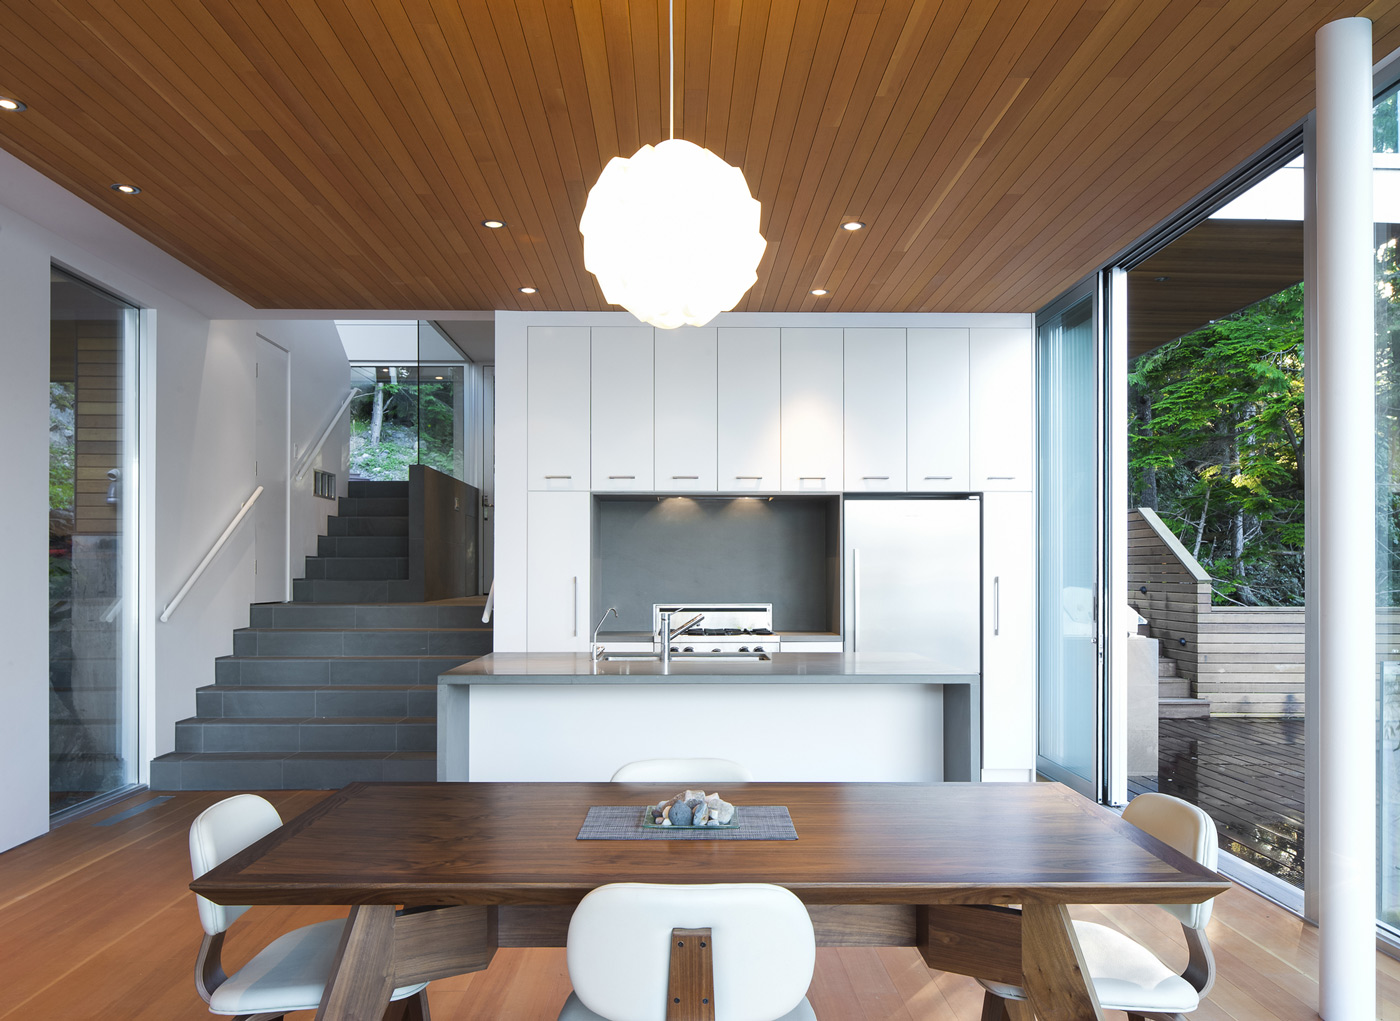 Wooden Dining Table, Kitchen, Lighting, House on Gambier Island, British Columbia